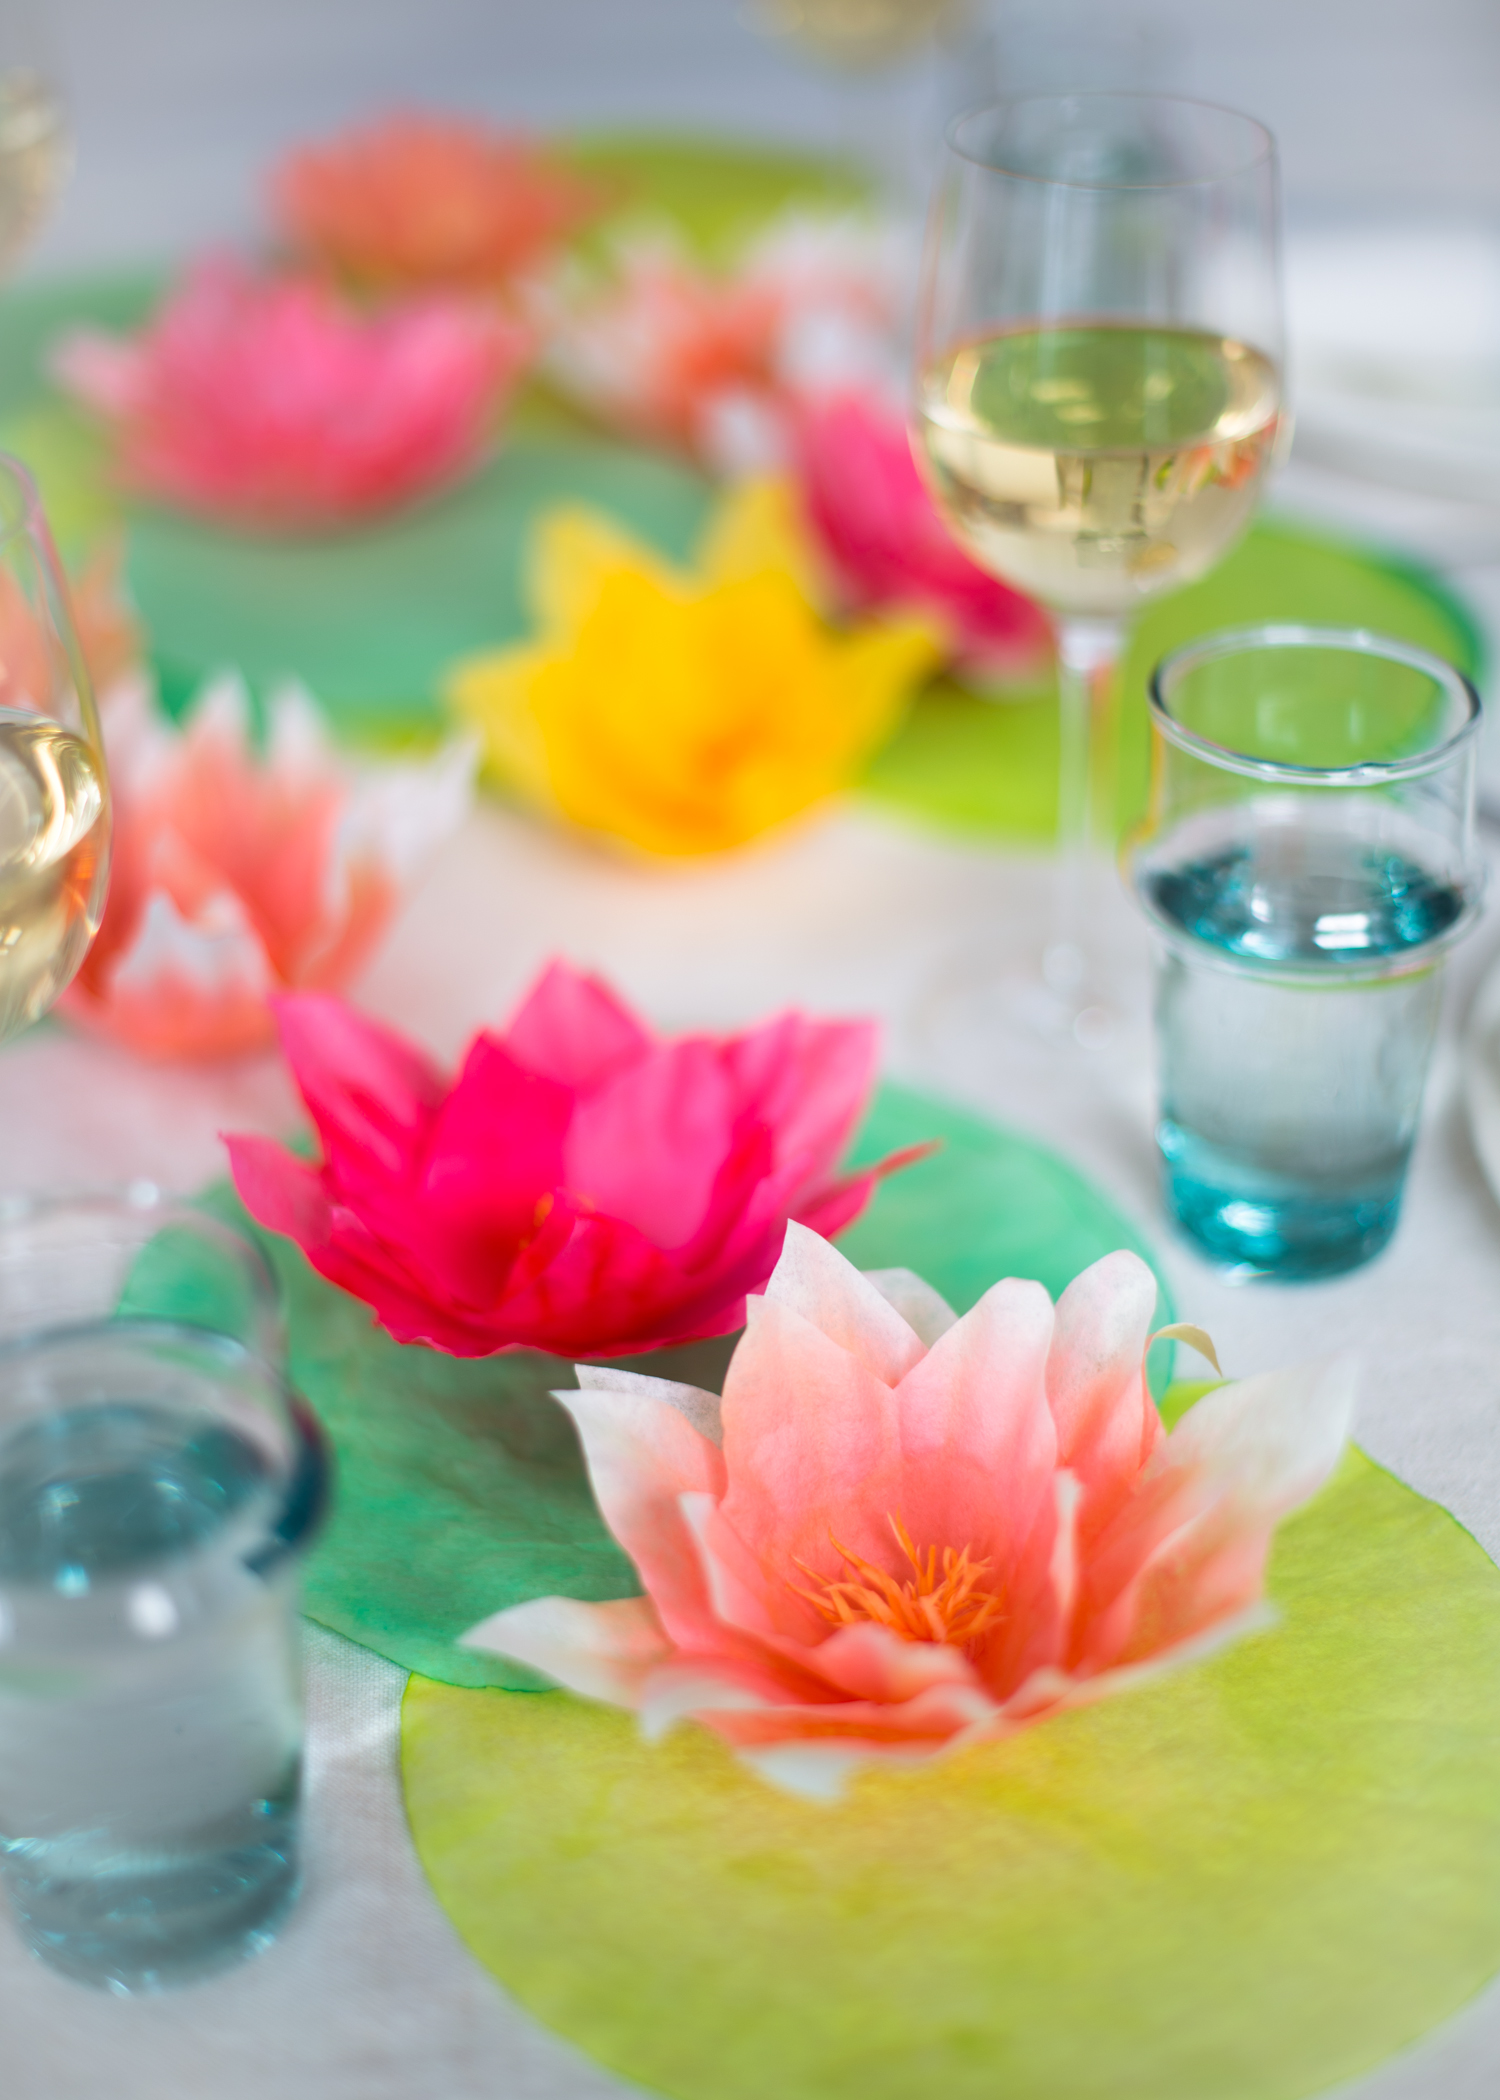 Coffee-Filter-Water-Lilies-Paper-Goods-Projects